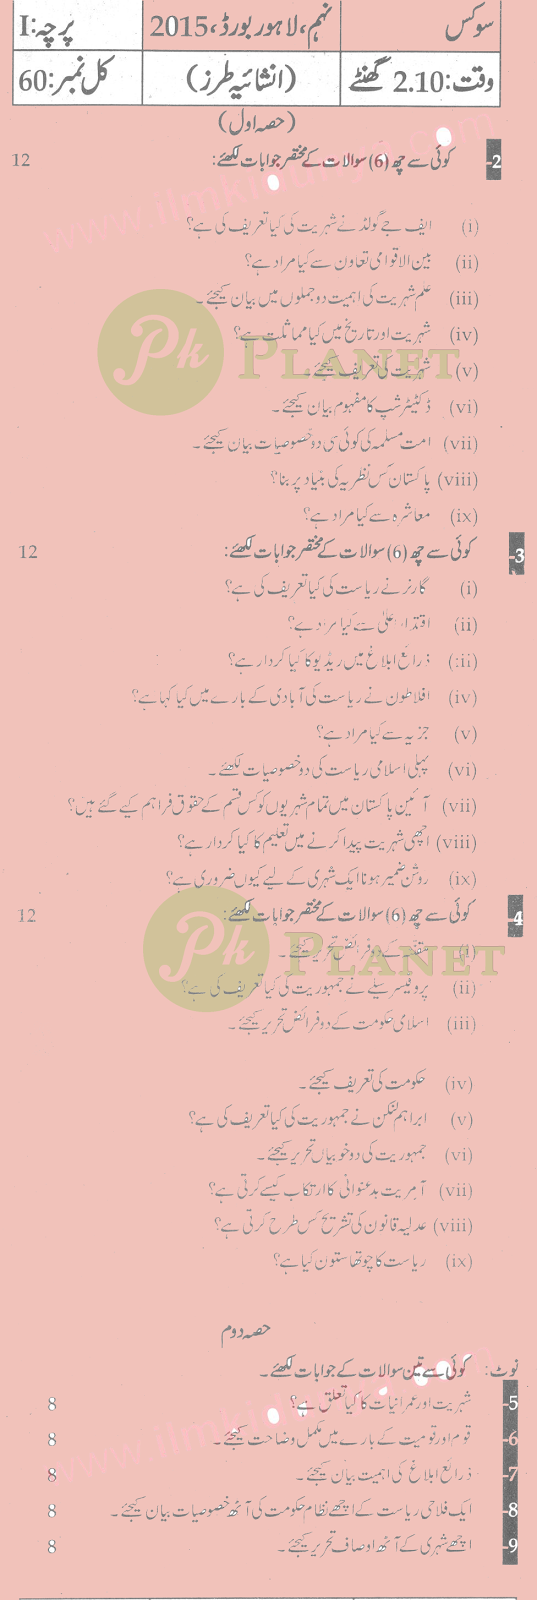 Past Papers of 9th Class Lahore Board Civics 2015